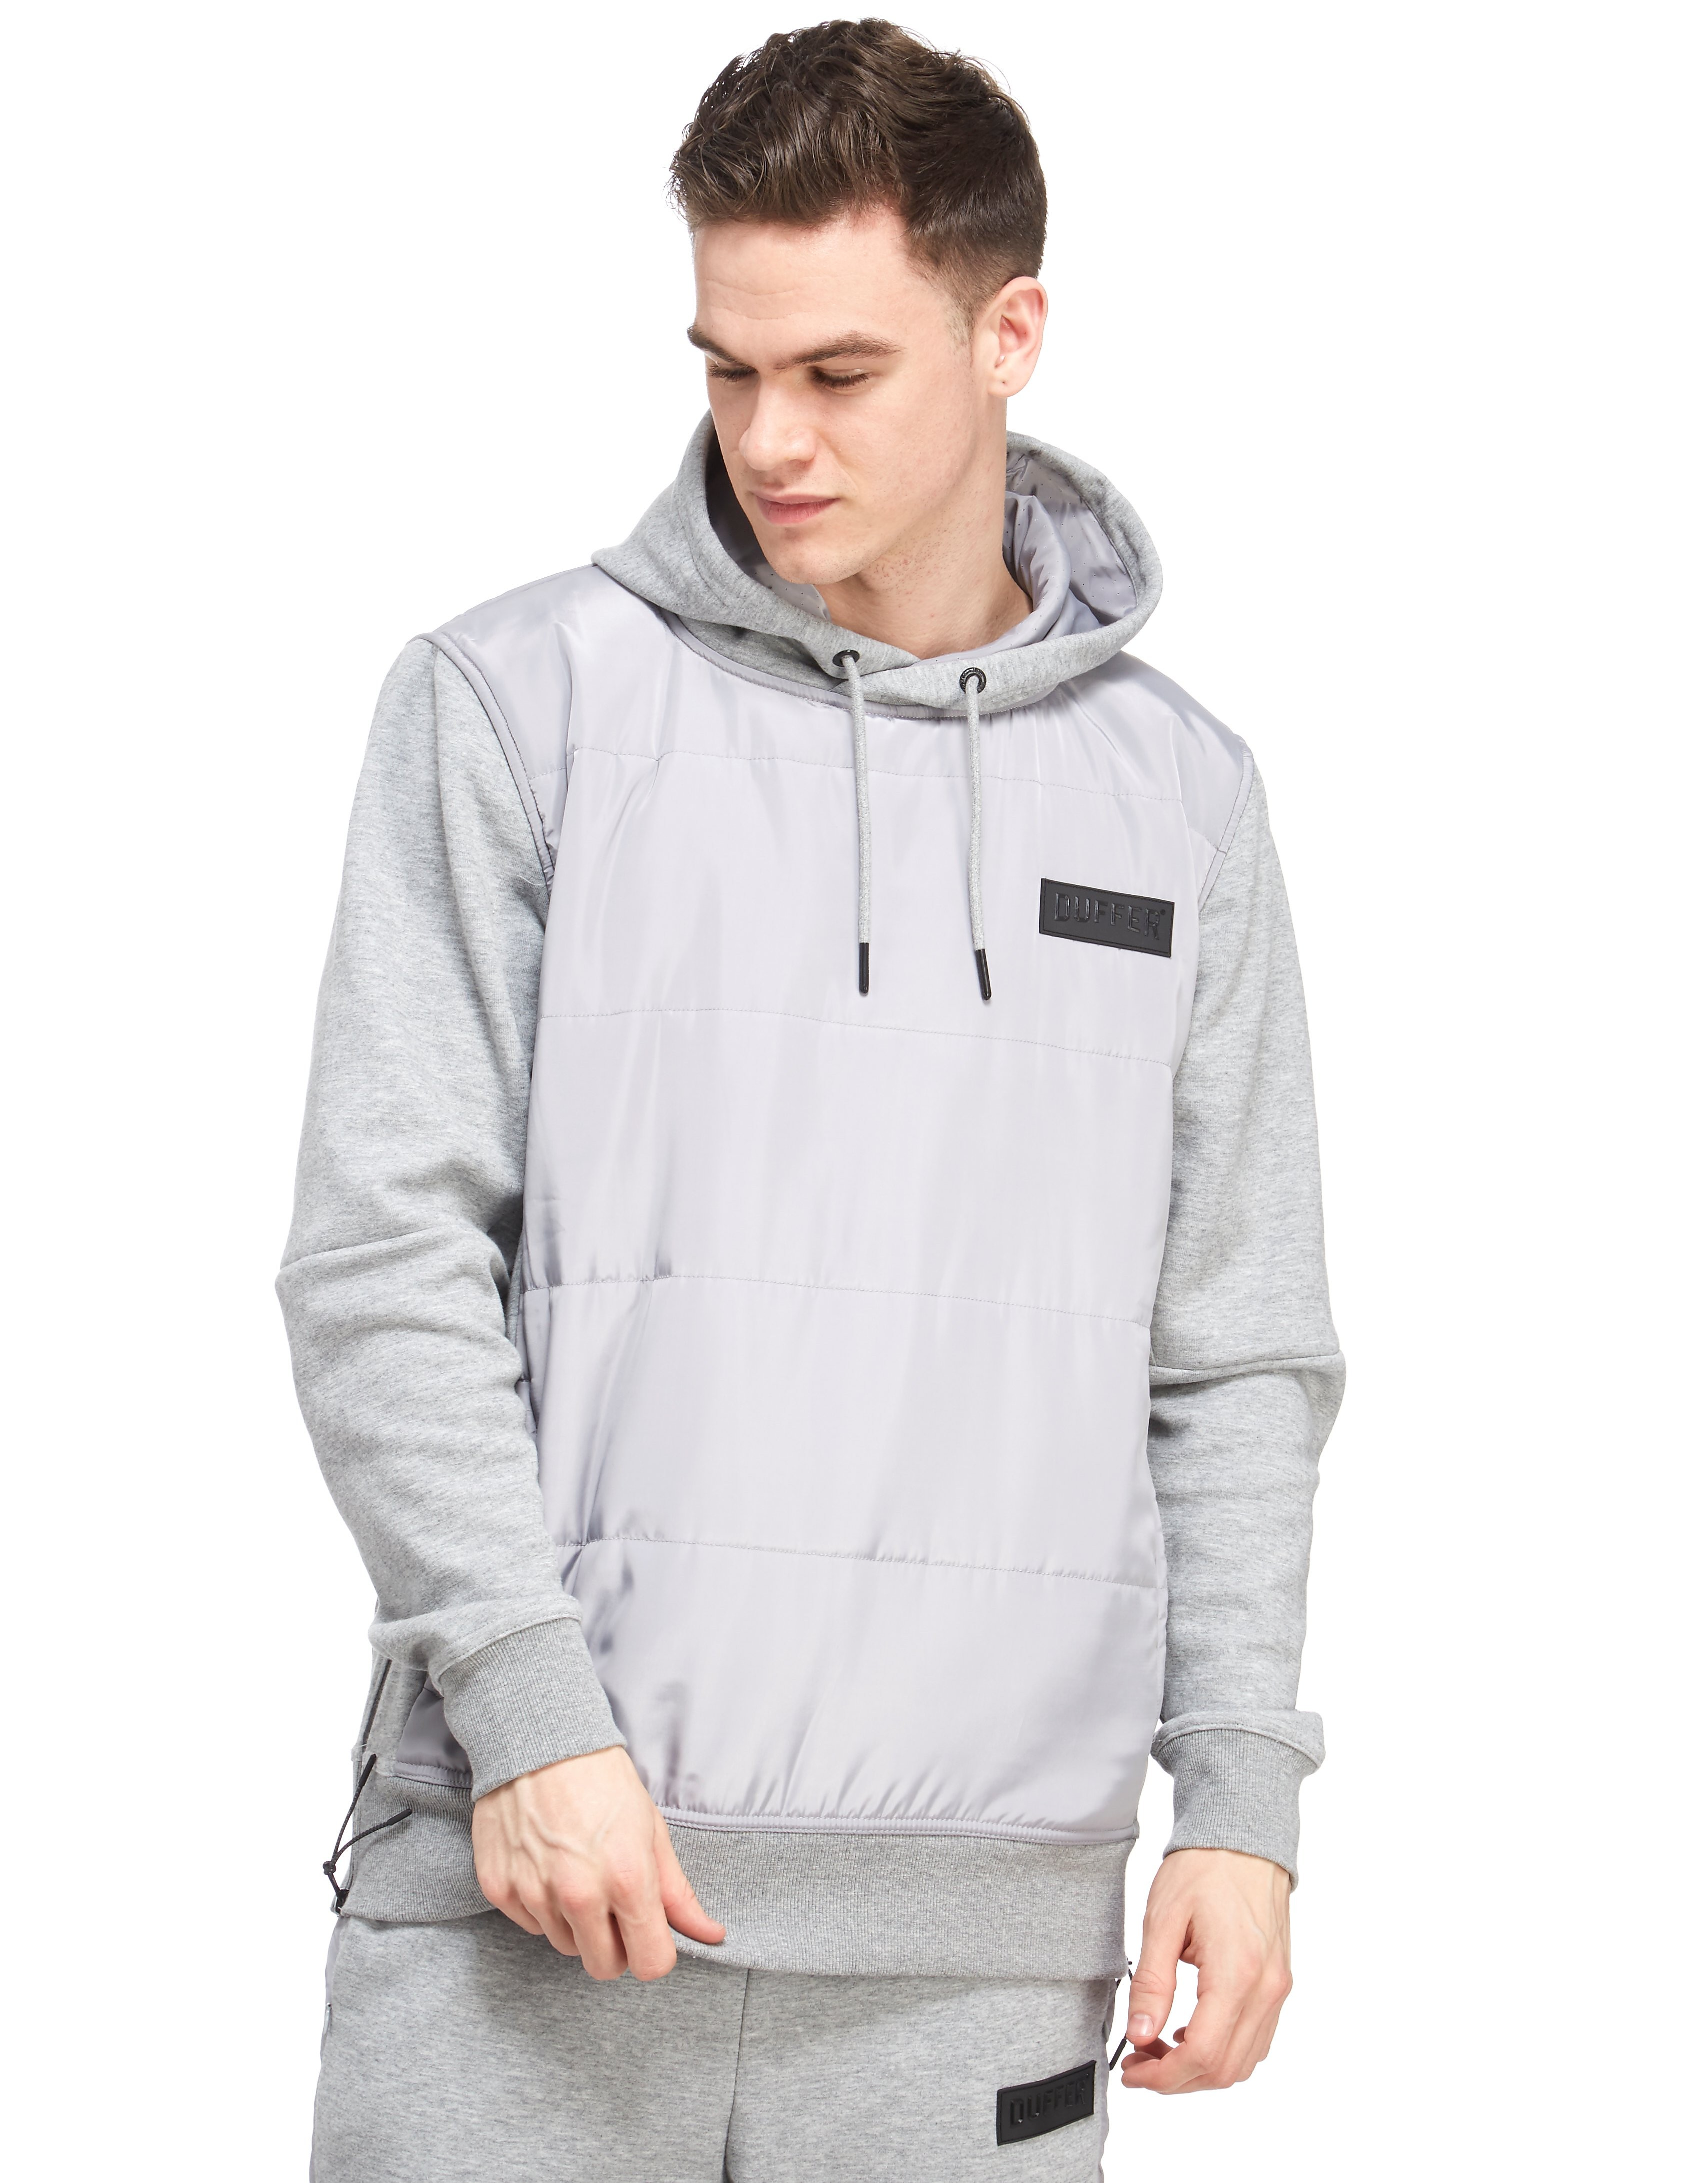 Duffer of St George Substance Hoody